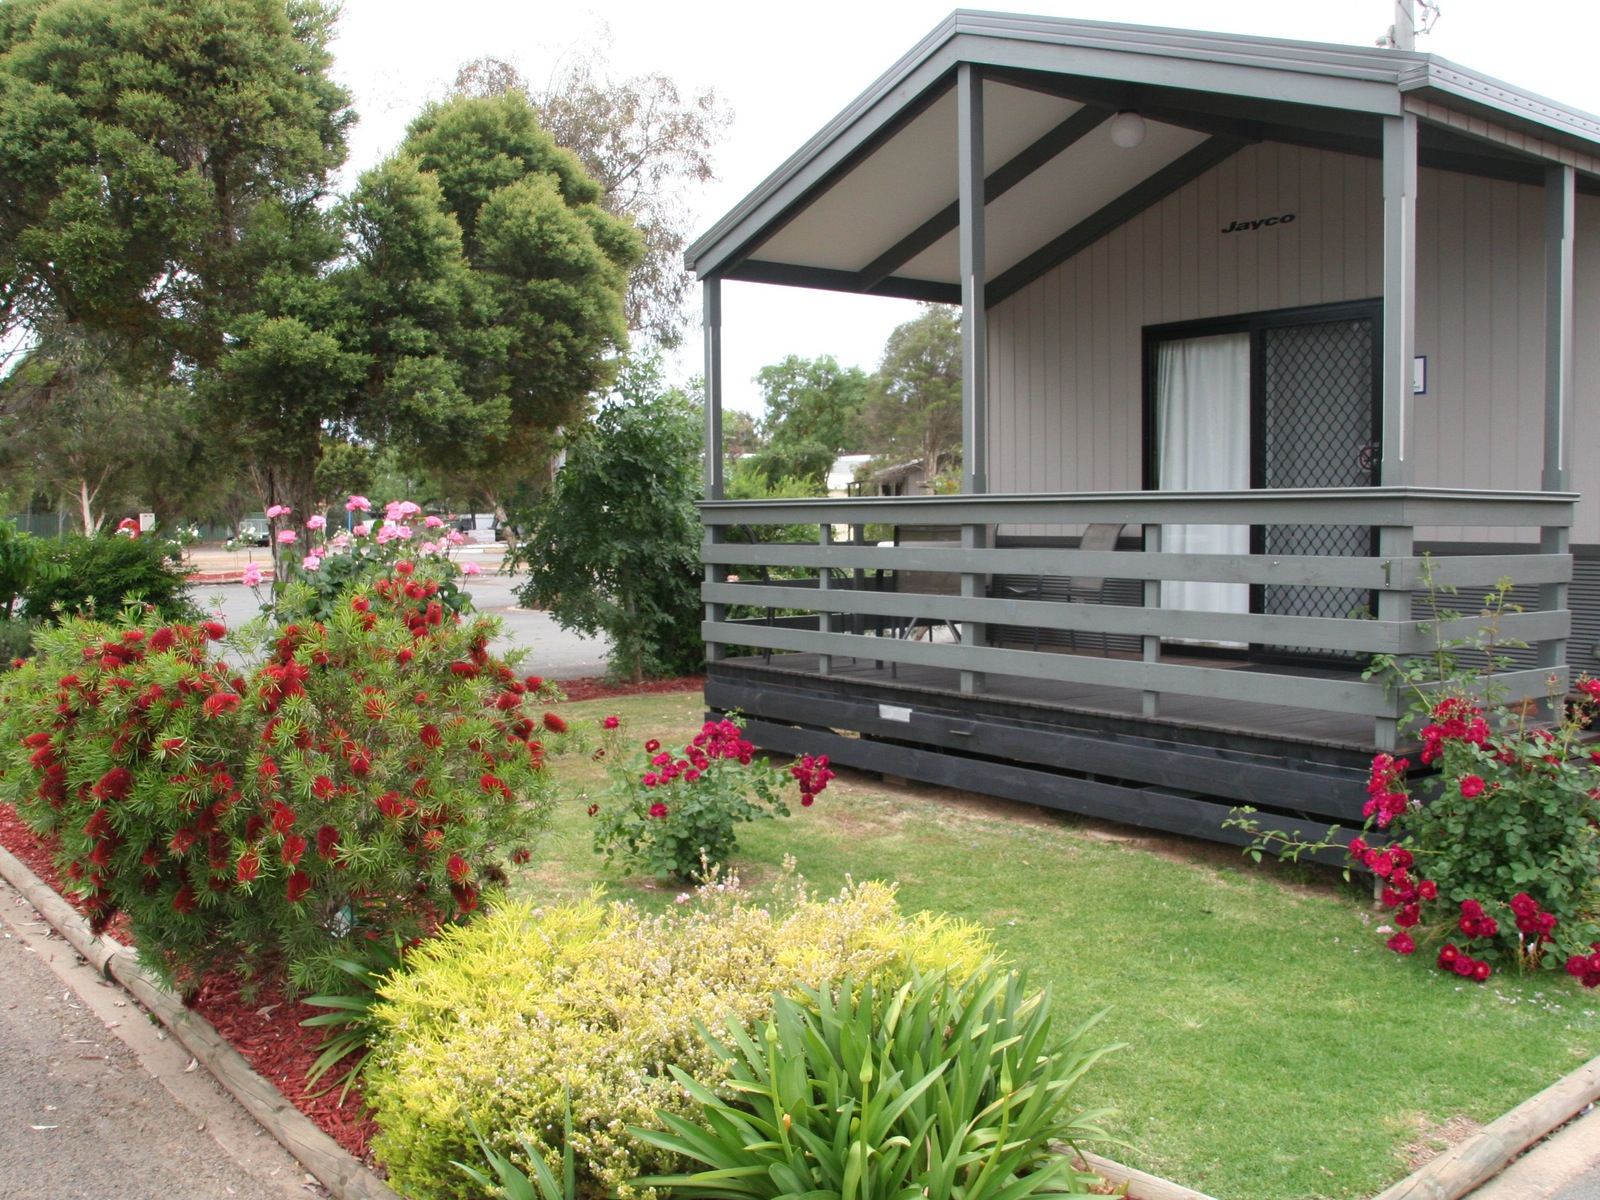 accommodation the murray victoria australia. Black Bedroom Furniture Sets. Home Design Ideas